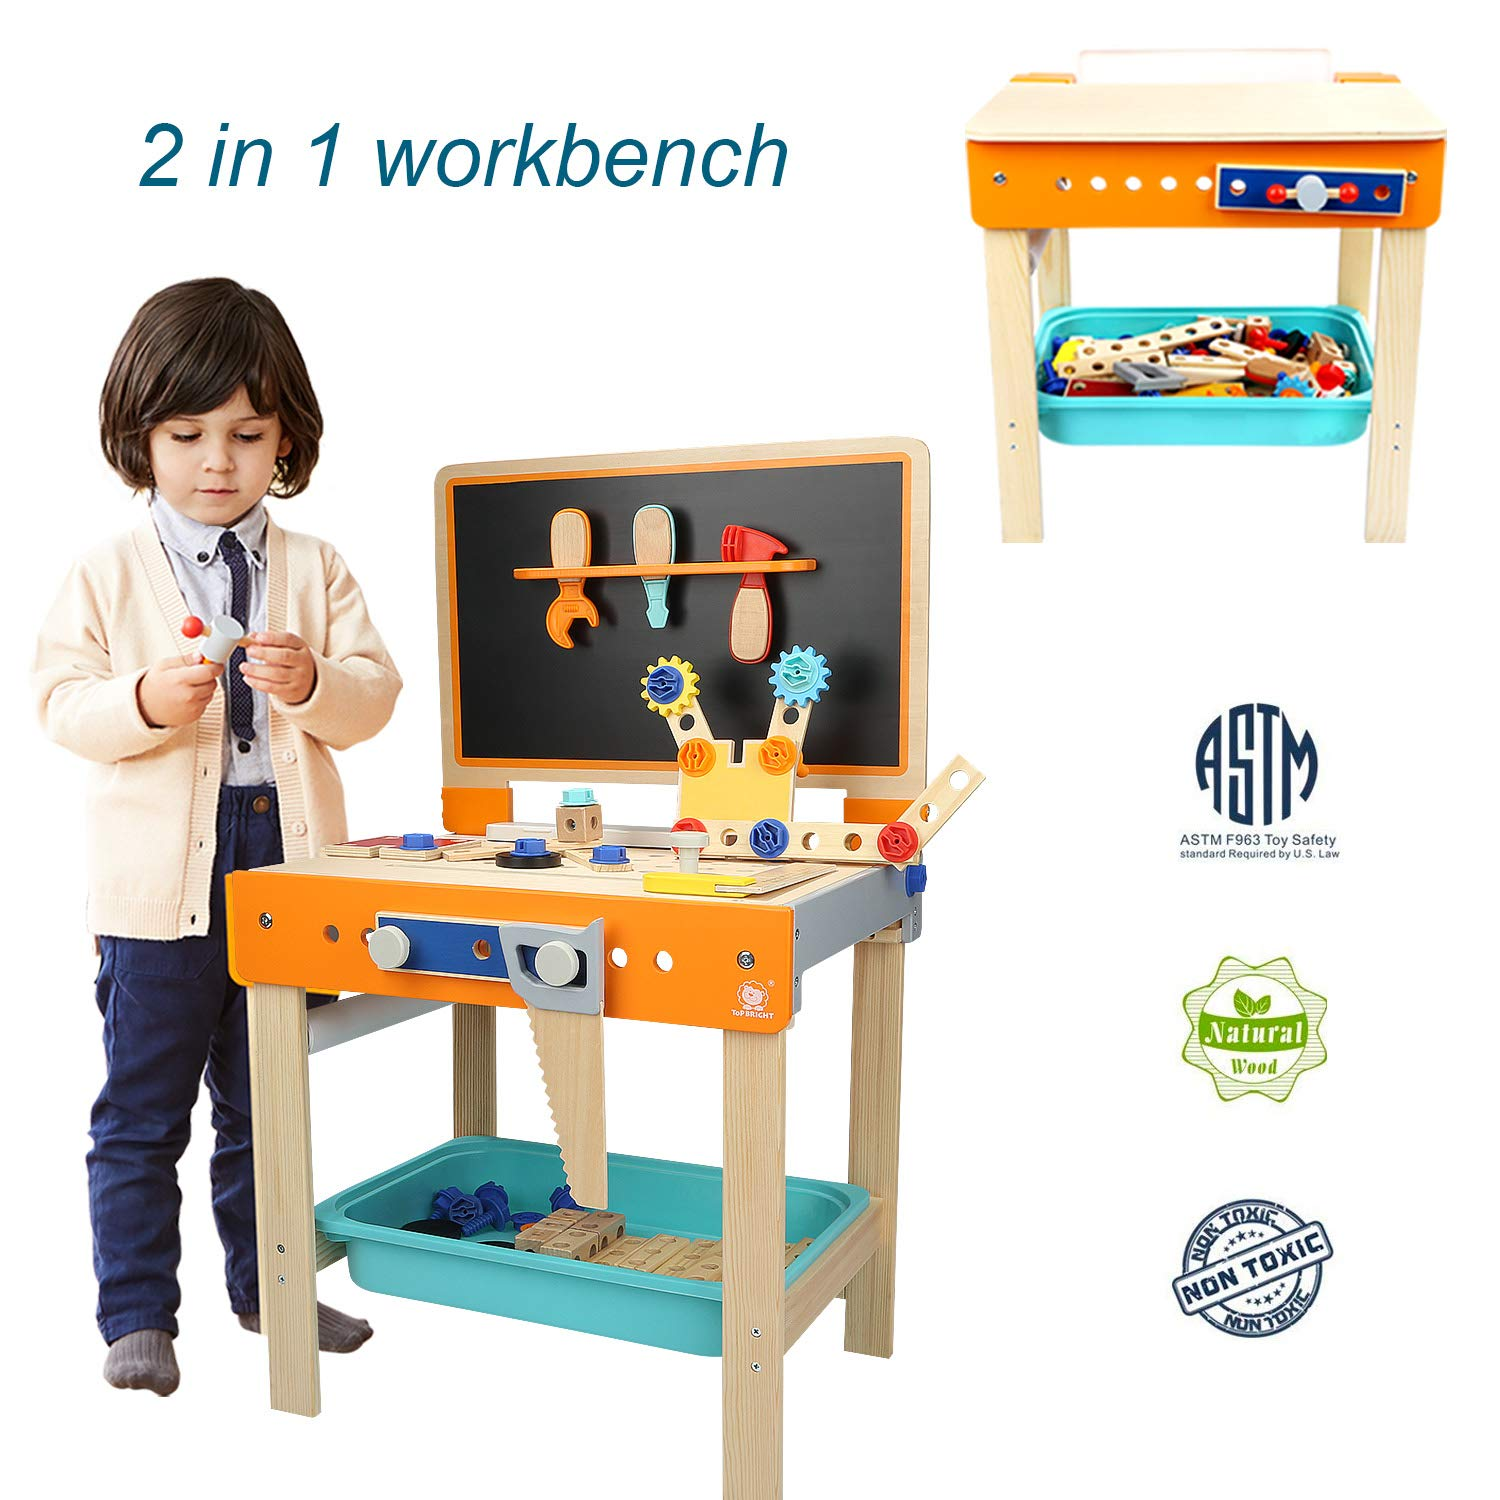 TOP BRIGHT Tool Bench Set Kids Toy Play Workbench for Toddler Workshop, Wooden Construction Bench for Boy Gifts 3 Year Old and Up by TOP BRIGHT (Image #1)